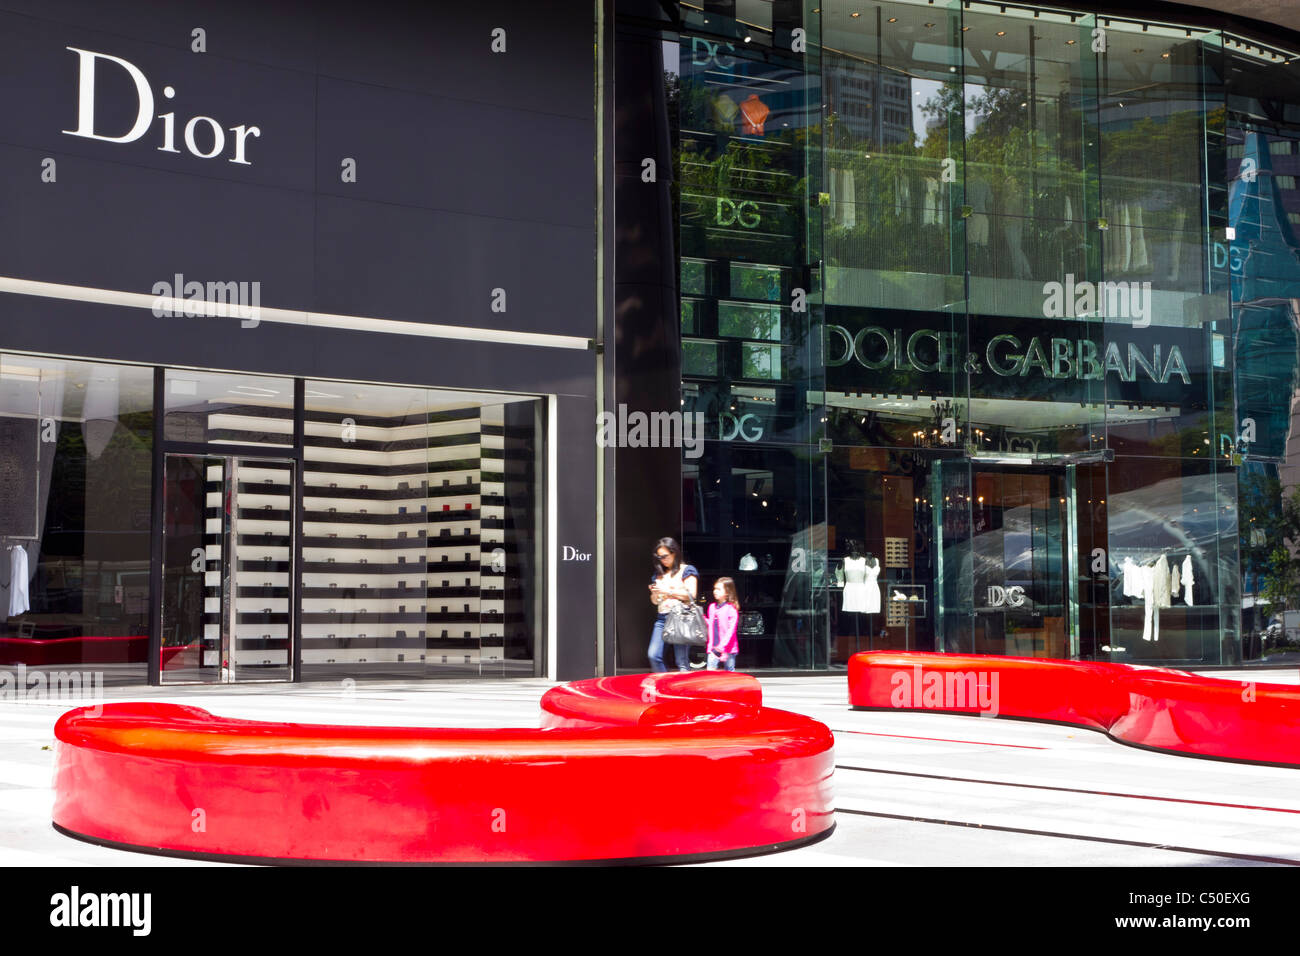 Dior and Dolce & Gabbana shops in Singapore's ION Shopping Centre - Stock Image